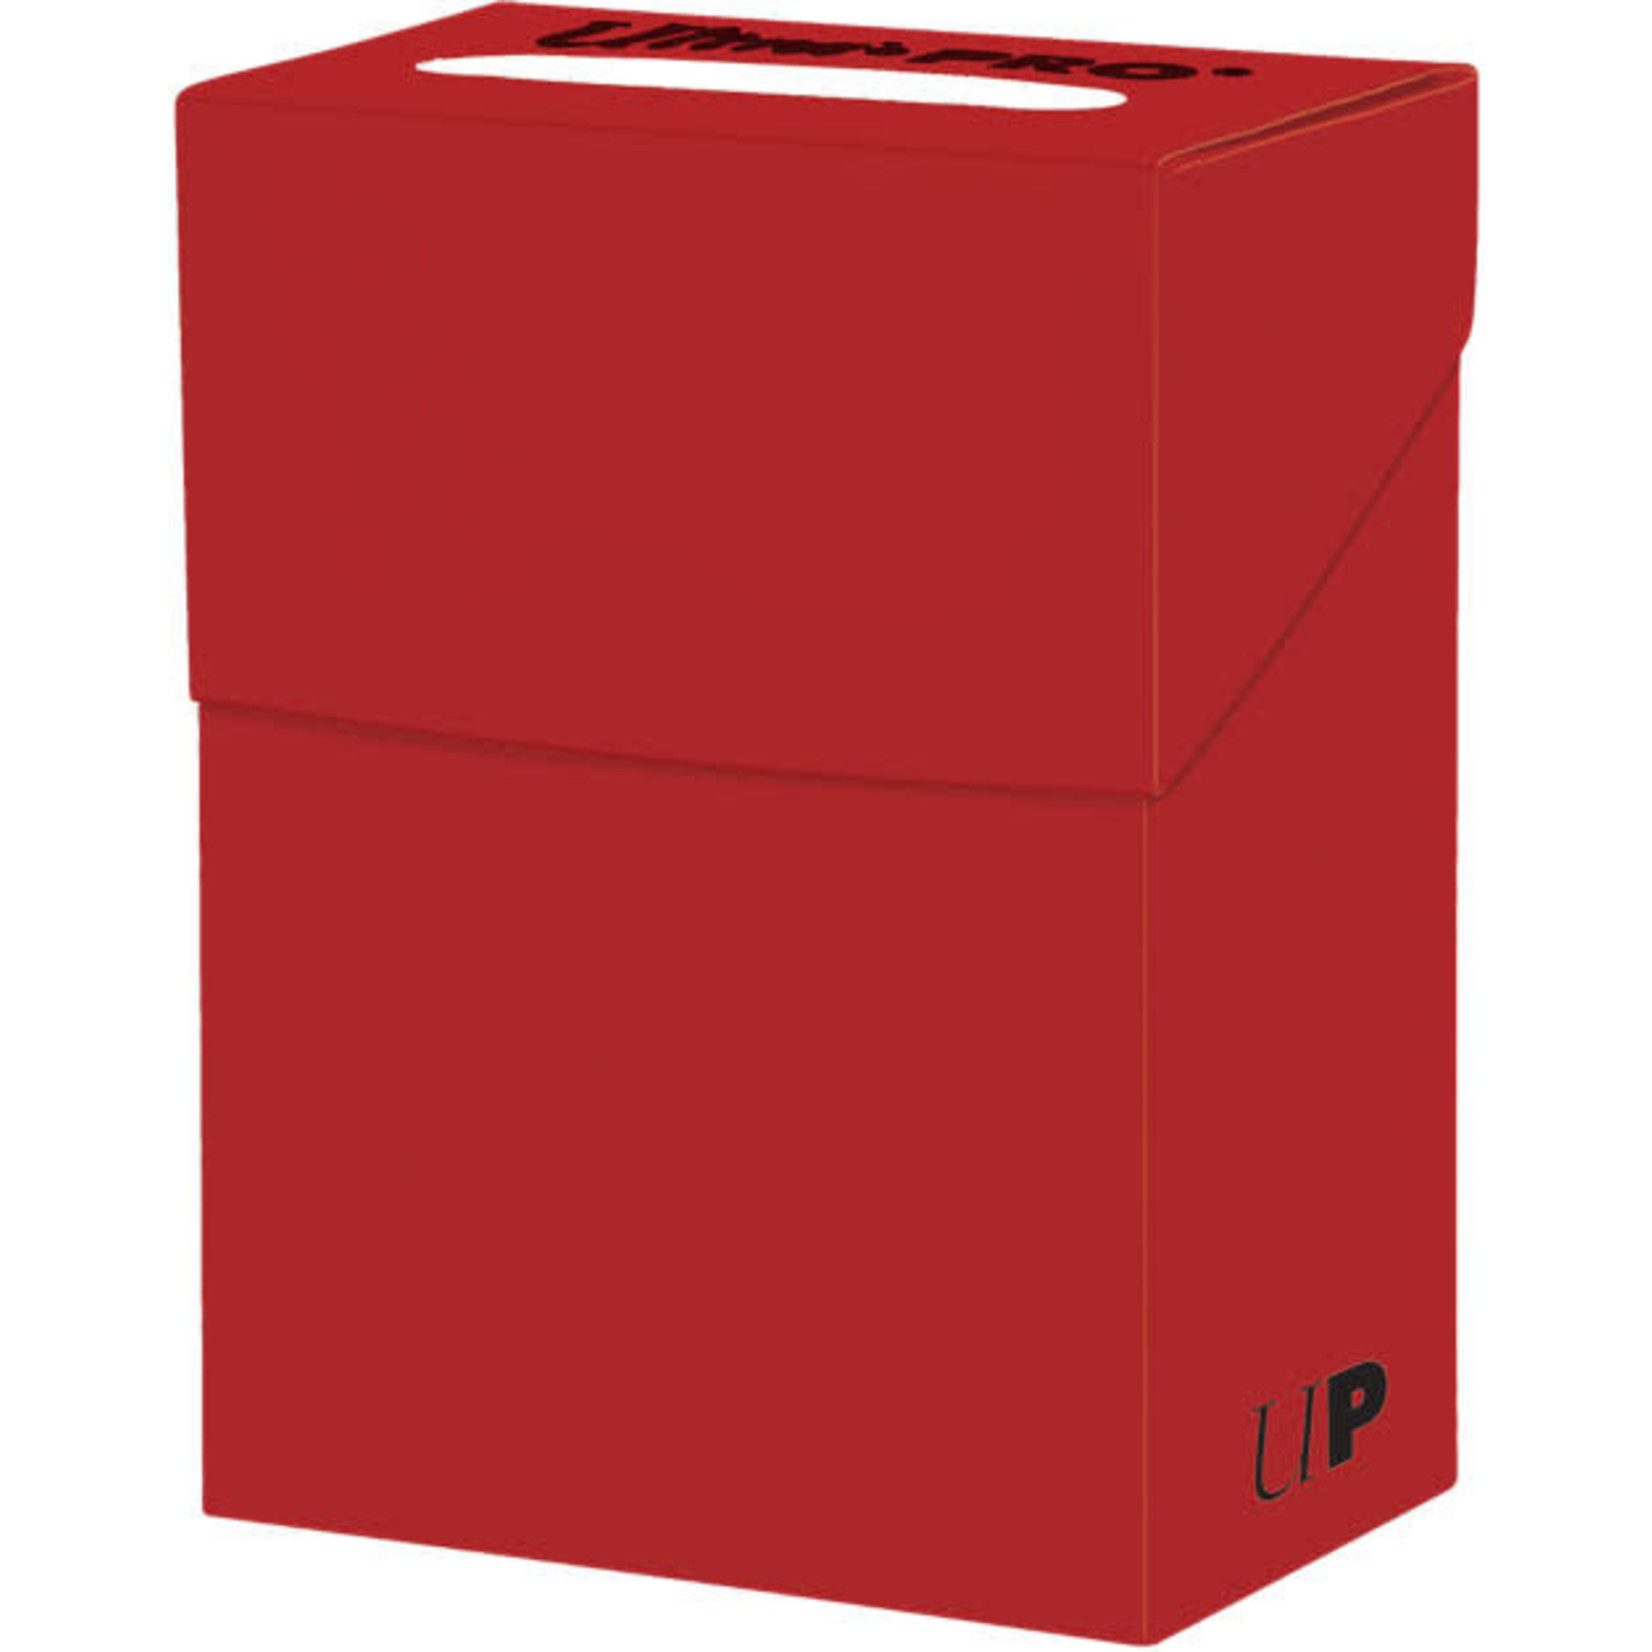 Solid Red Deck Box